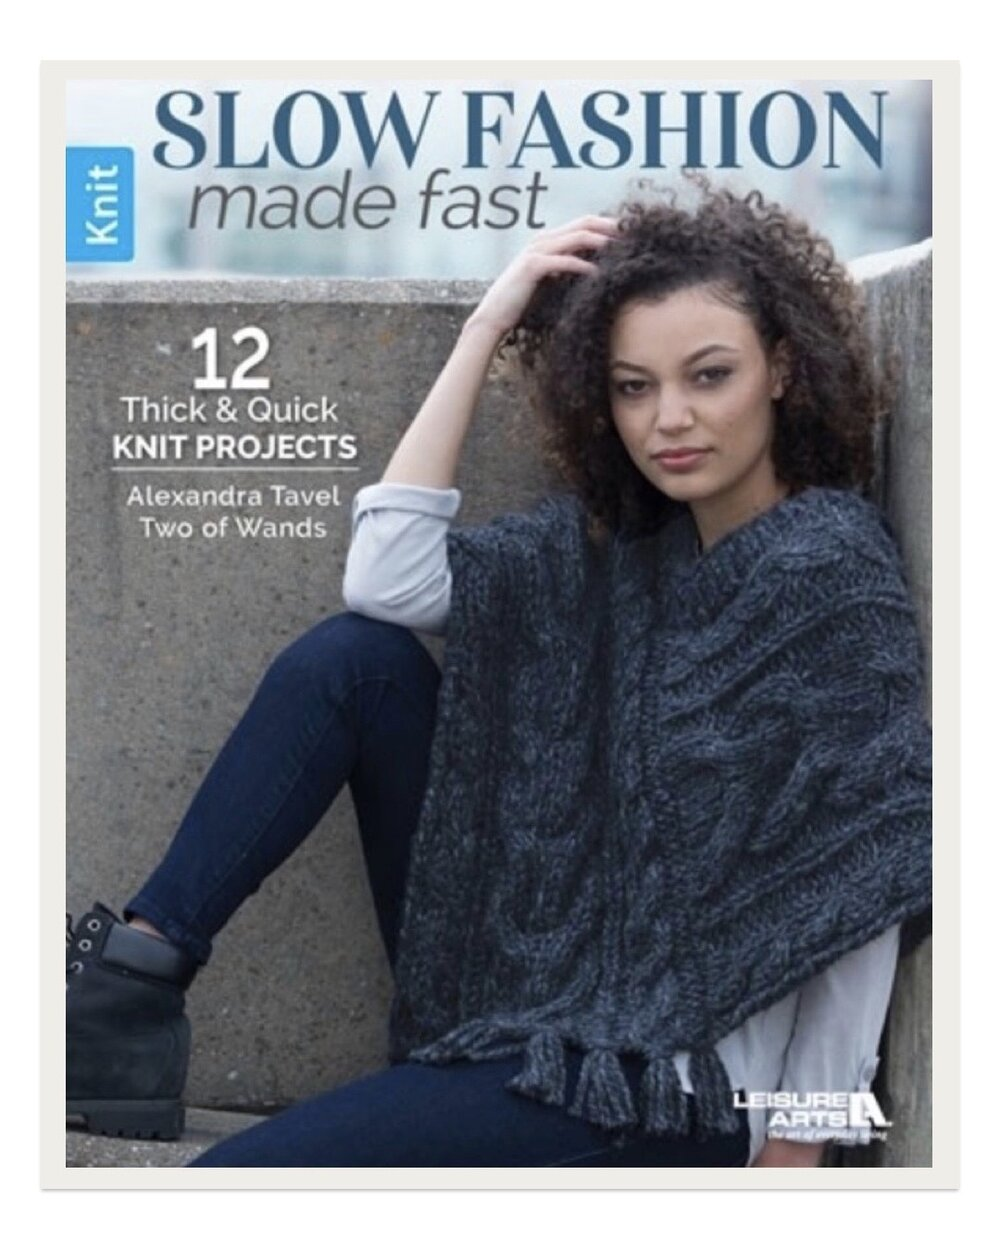 I designed all of the pieces in this new Leisure Arts knitting pattern book available exclusively on their site as a downloadable PDF and at select JoAnn stores in book form. The 12 items are all fashion-forward and made with Lion Brand Wool-Ease Thick & Quick for satisfyingly quick knit projects.